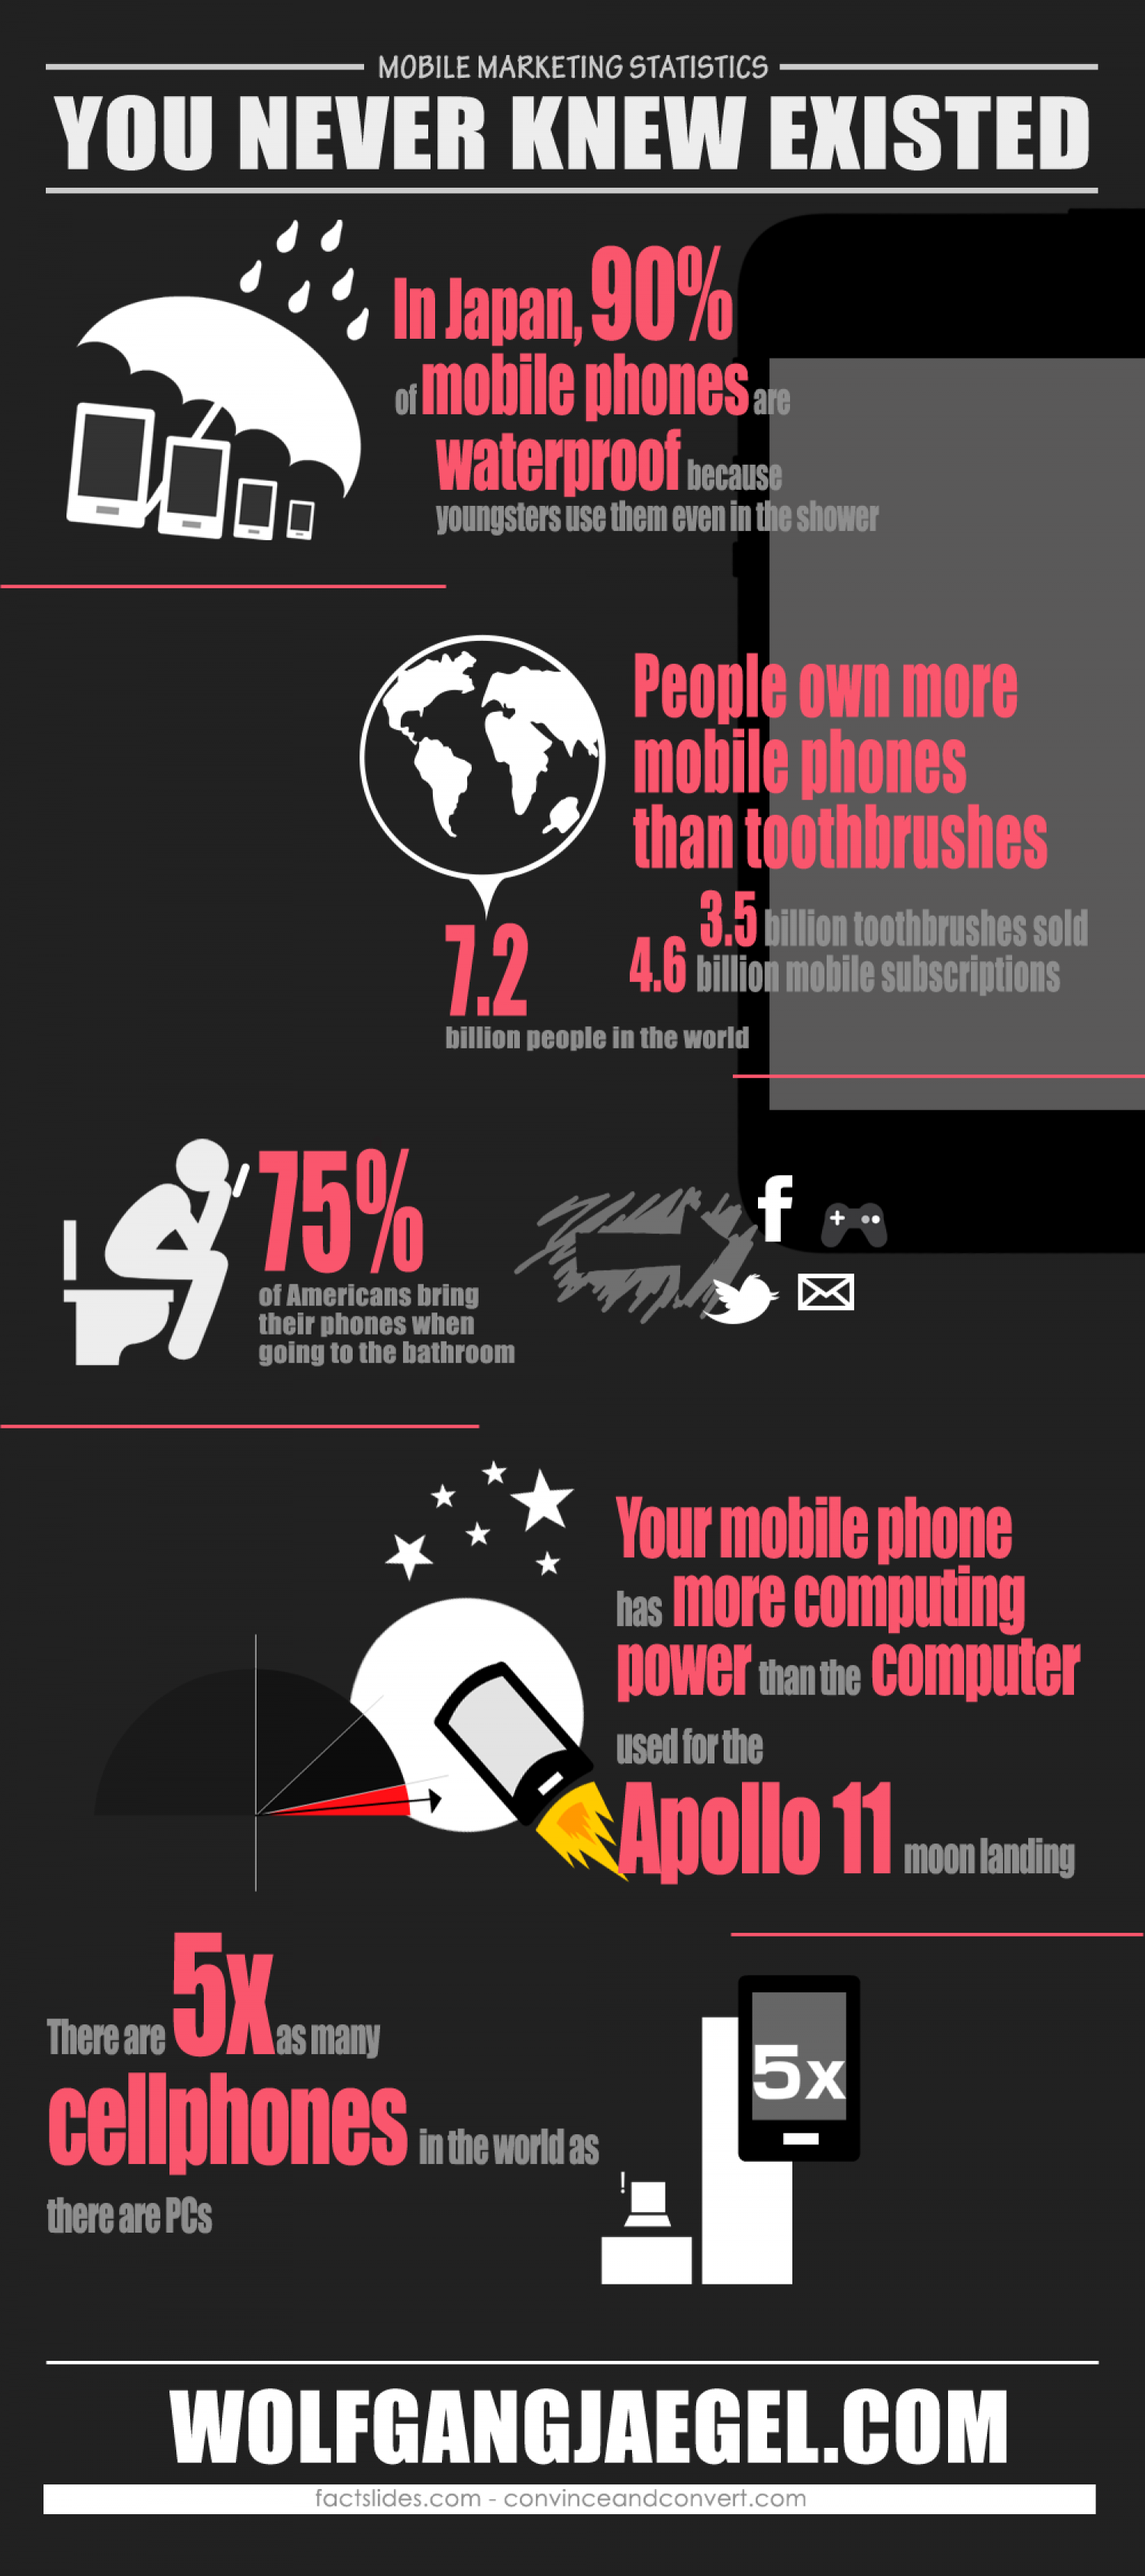 Mobile Marketing Statistics You Never Knew Existed Infographic